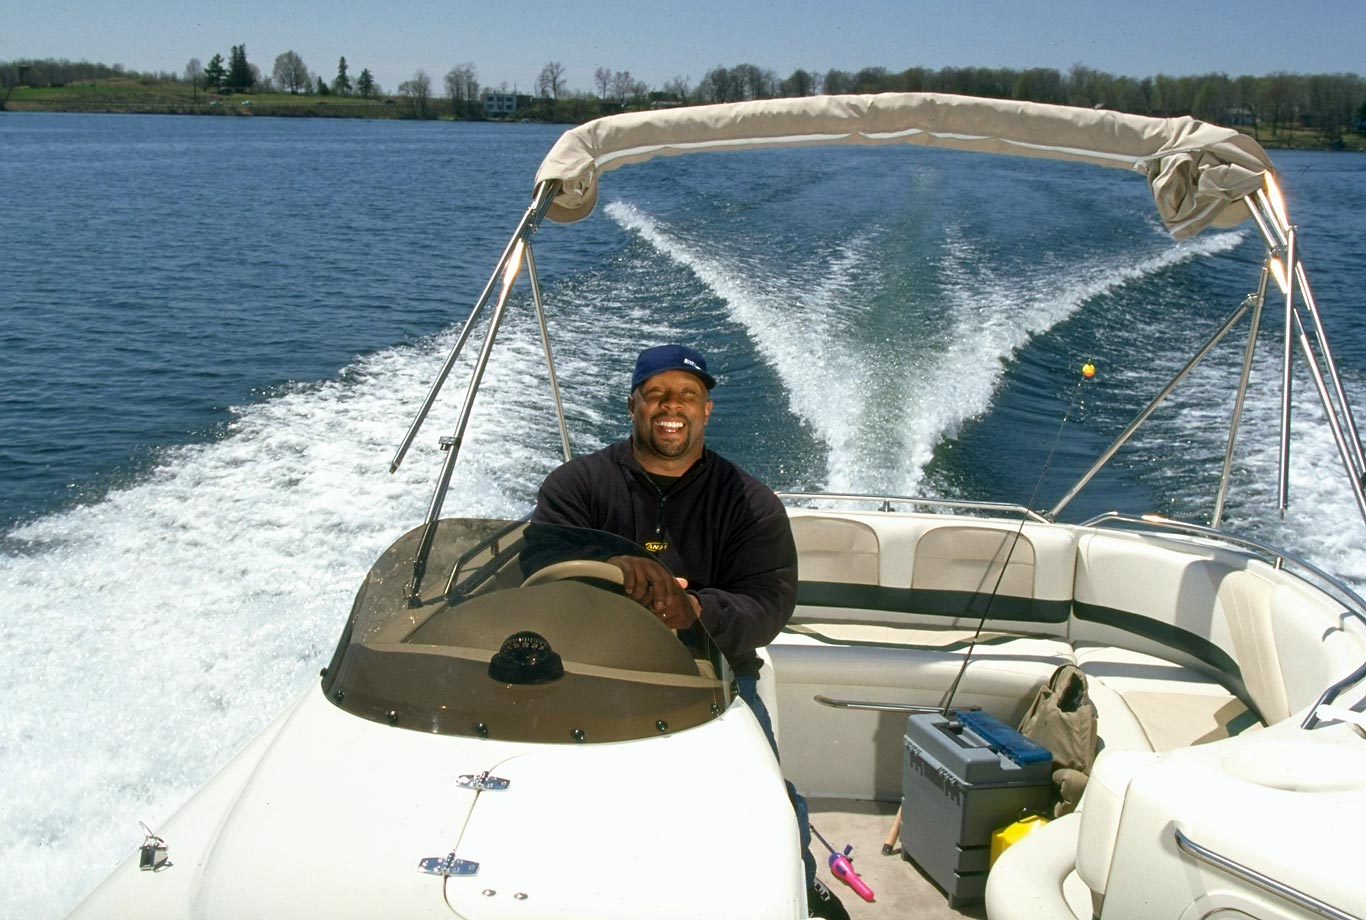 The former Twins star rides in his fishing boat in 1997. The 2001 Hall of Fame inductee hit .316 in his career but was forced to retire before the 1996 season due to loss of vision in his right eye from glaucoma.